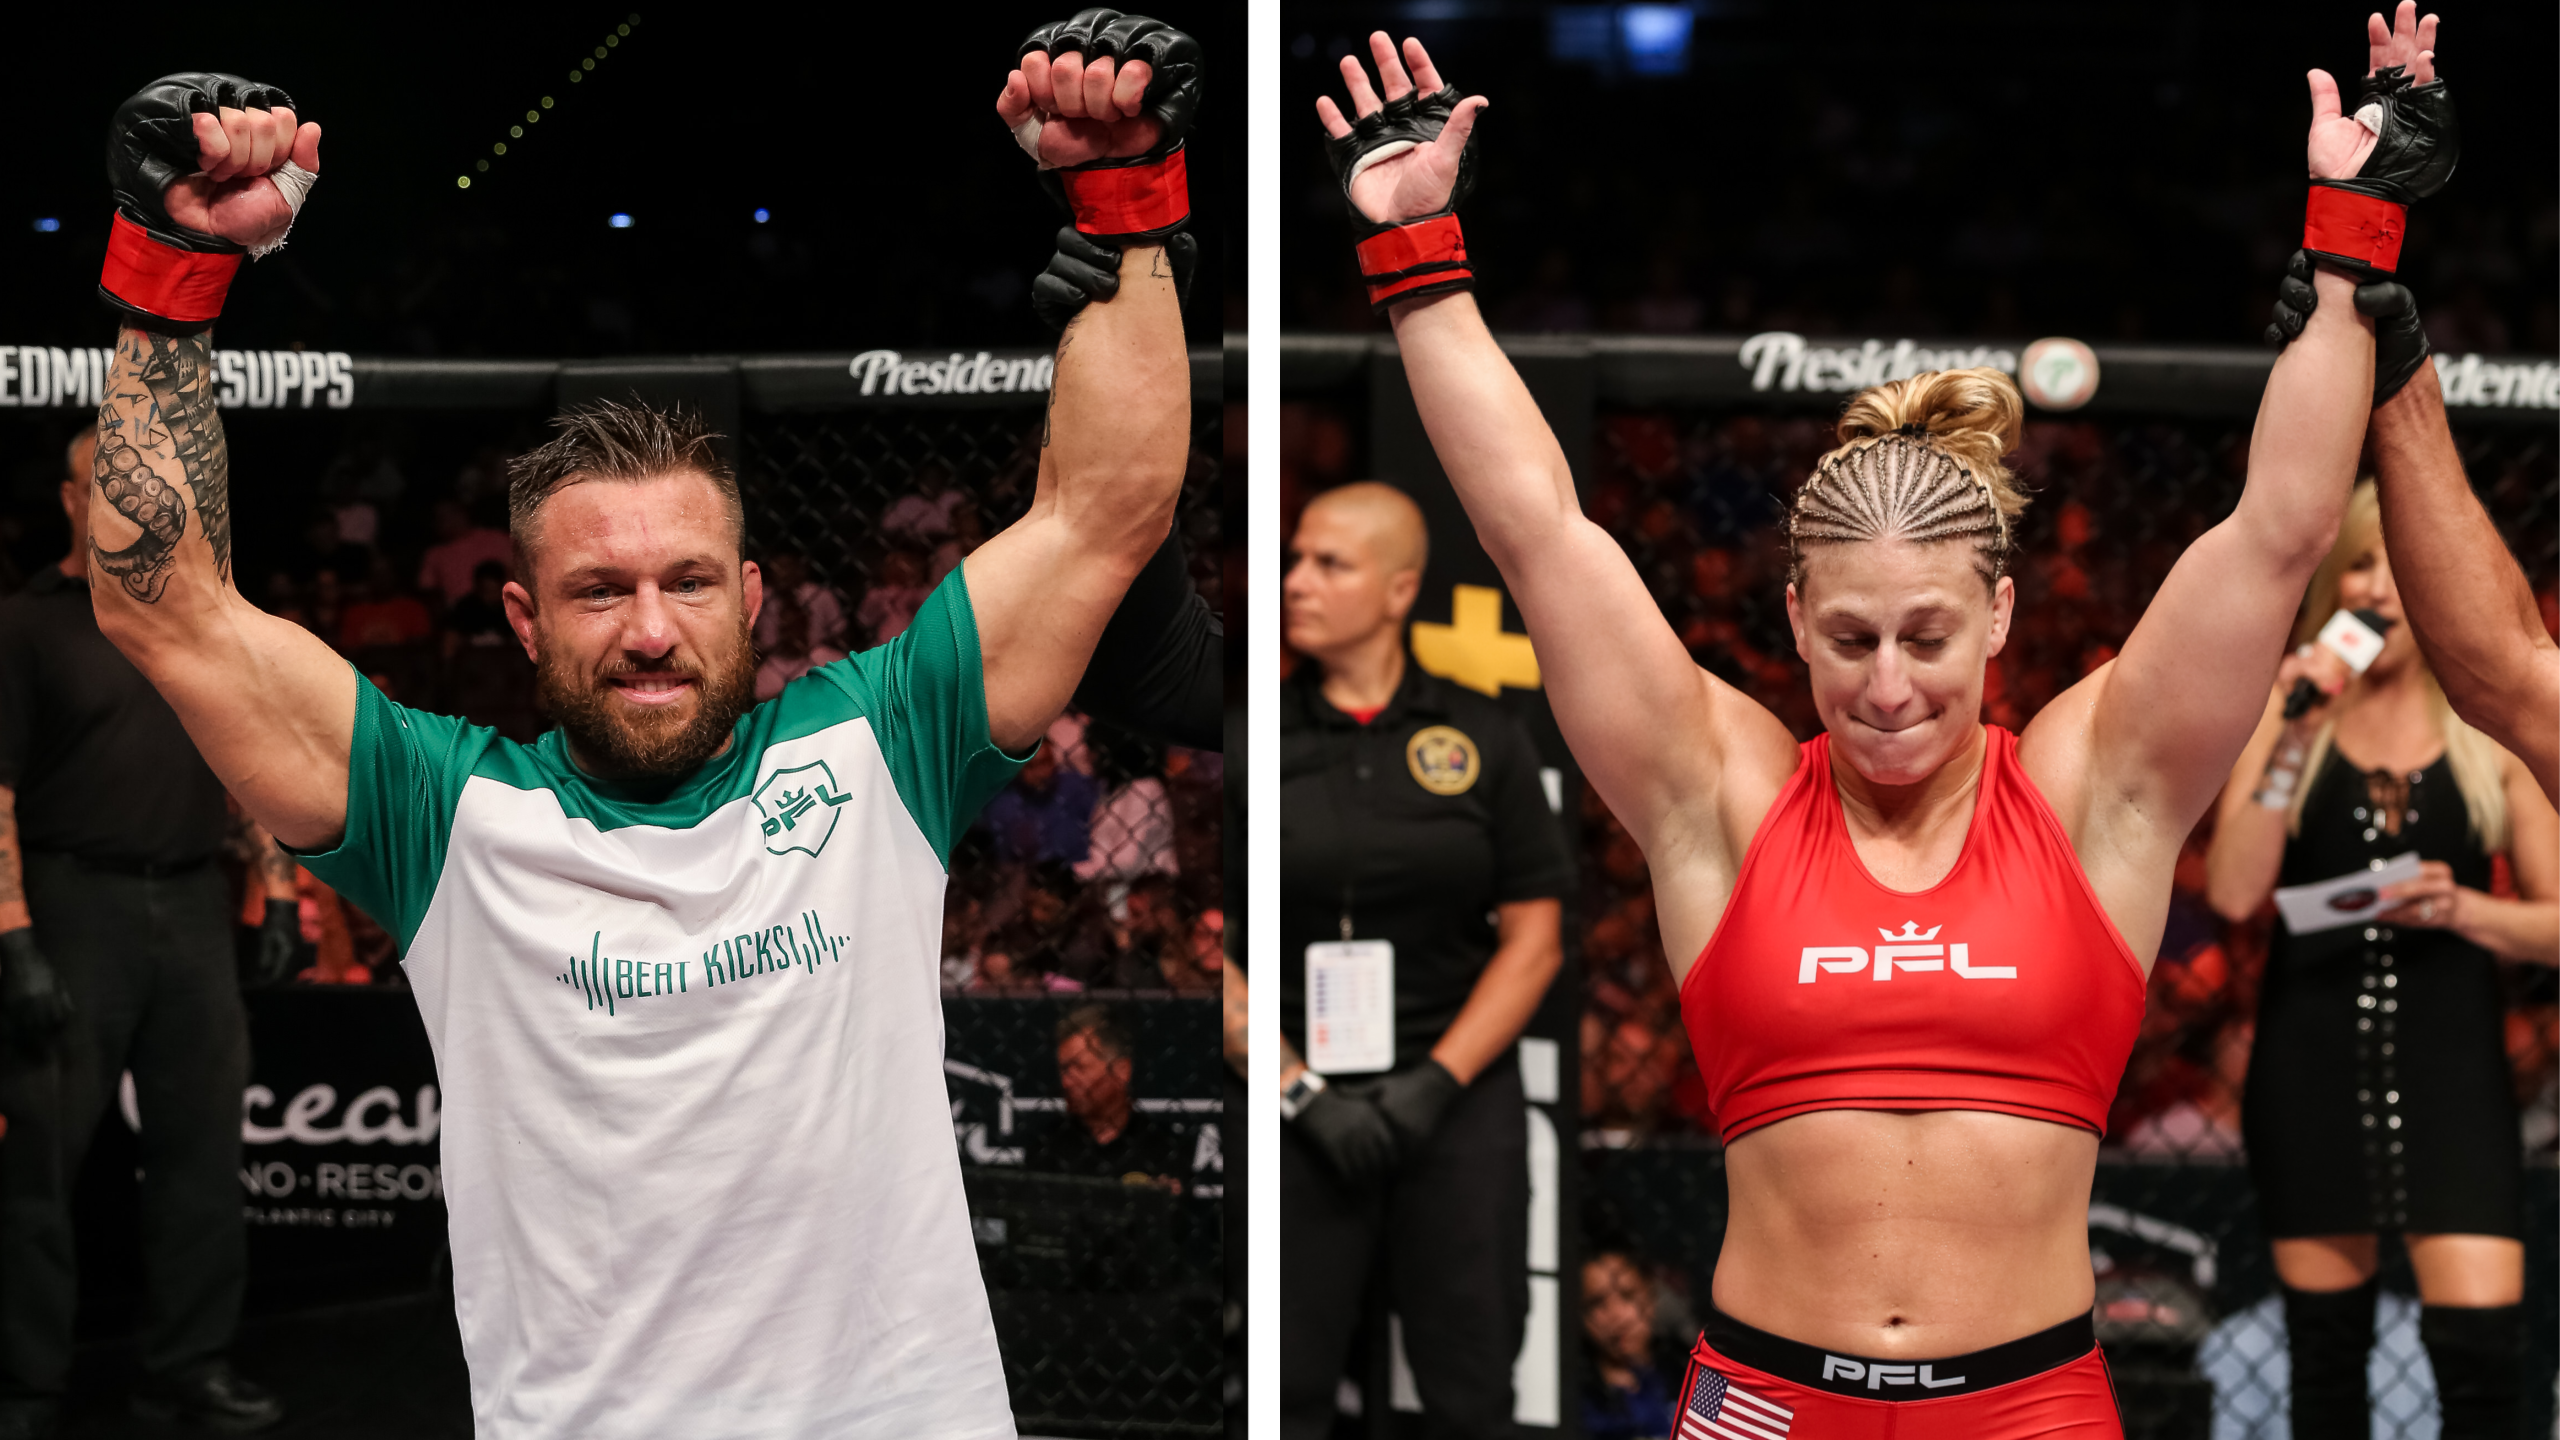 PFL fighters reveal what they'd spend $1 million on if they win playoffs